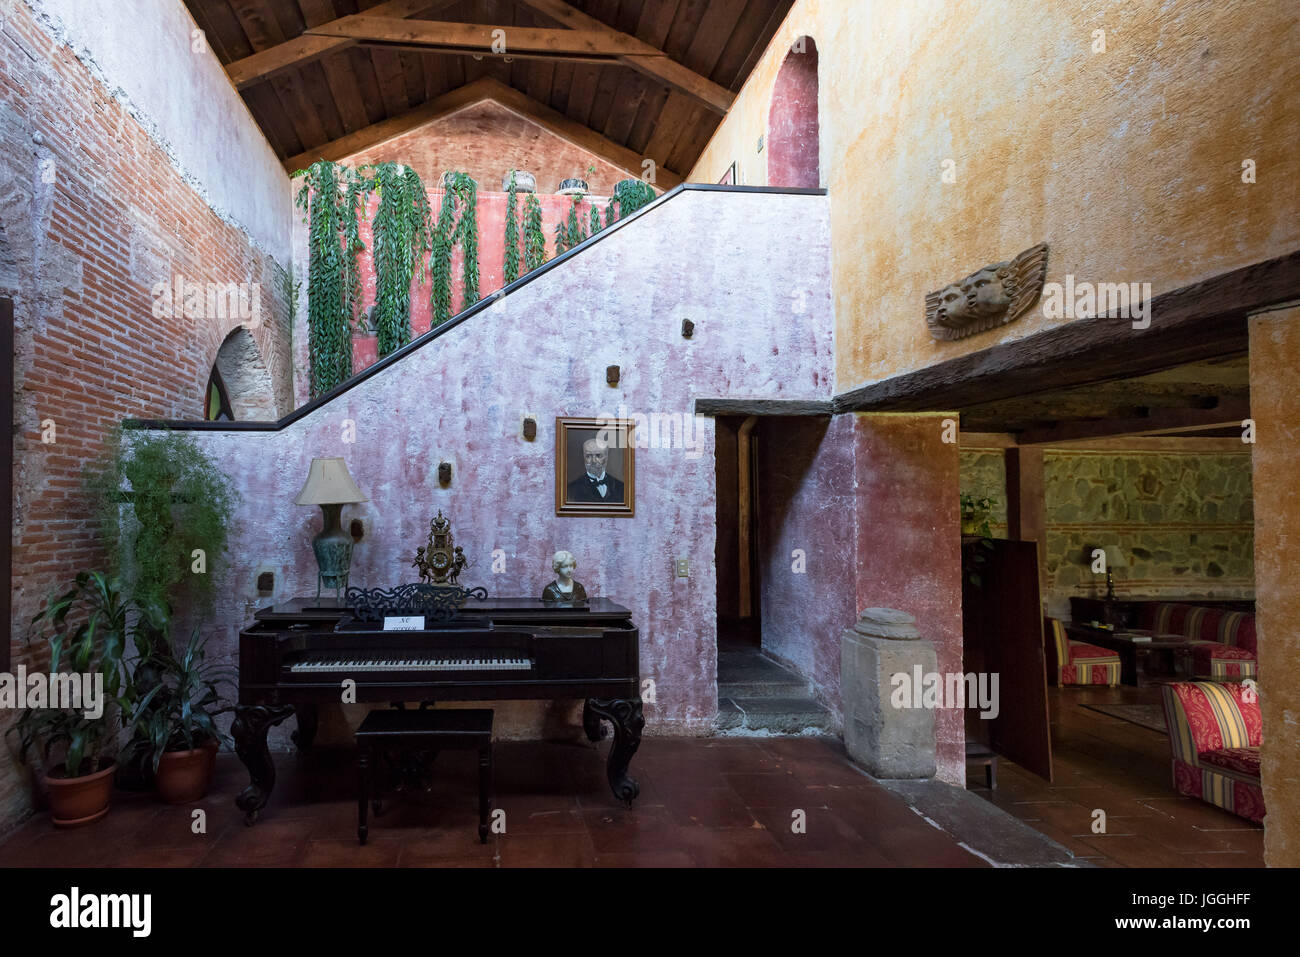 Architecture Of Colonial Period, Furniture Inside A House Of Antigua,  Guatemala